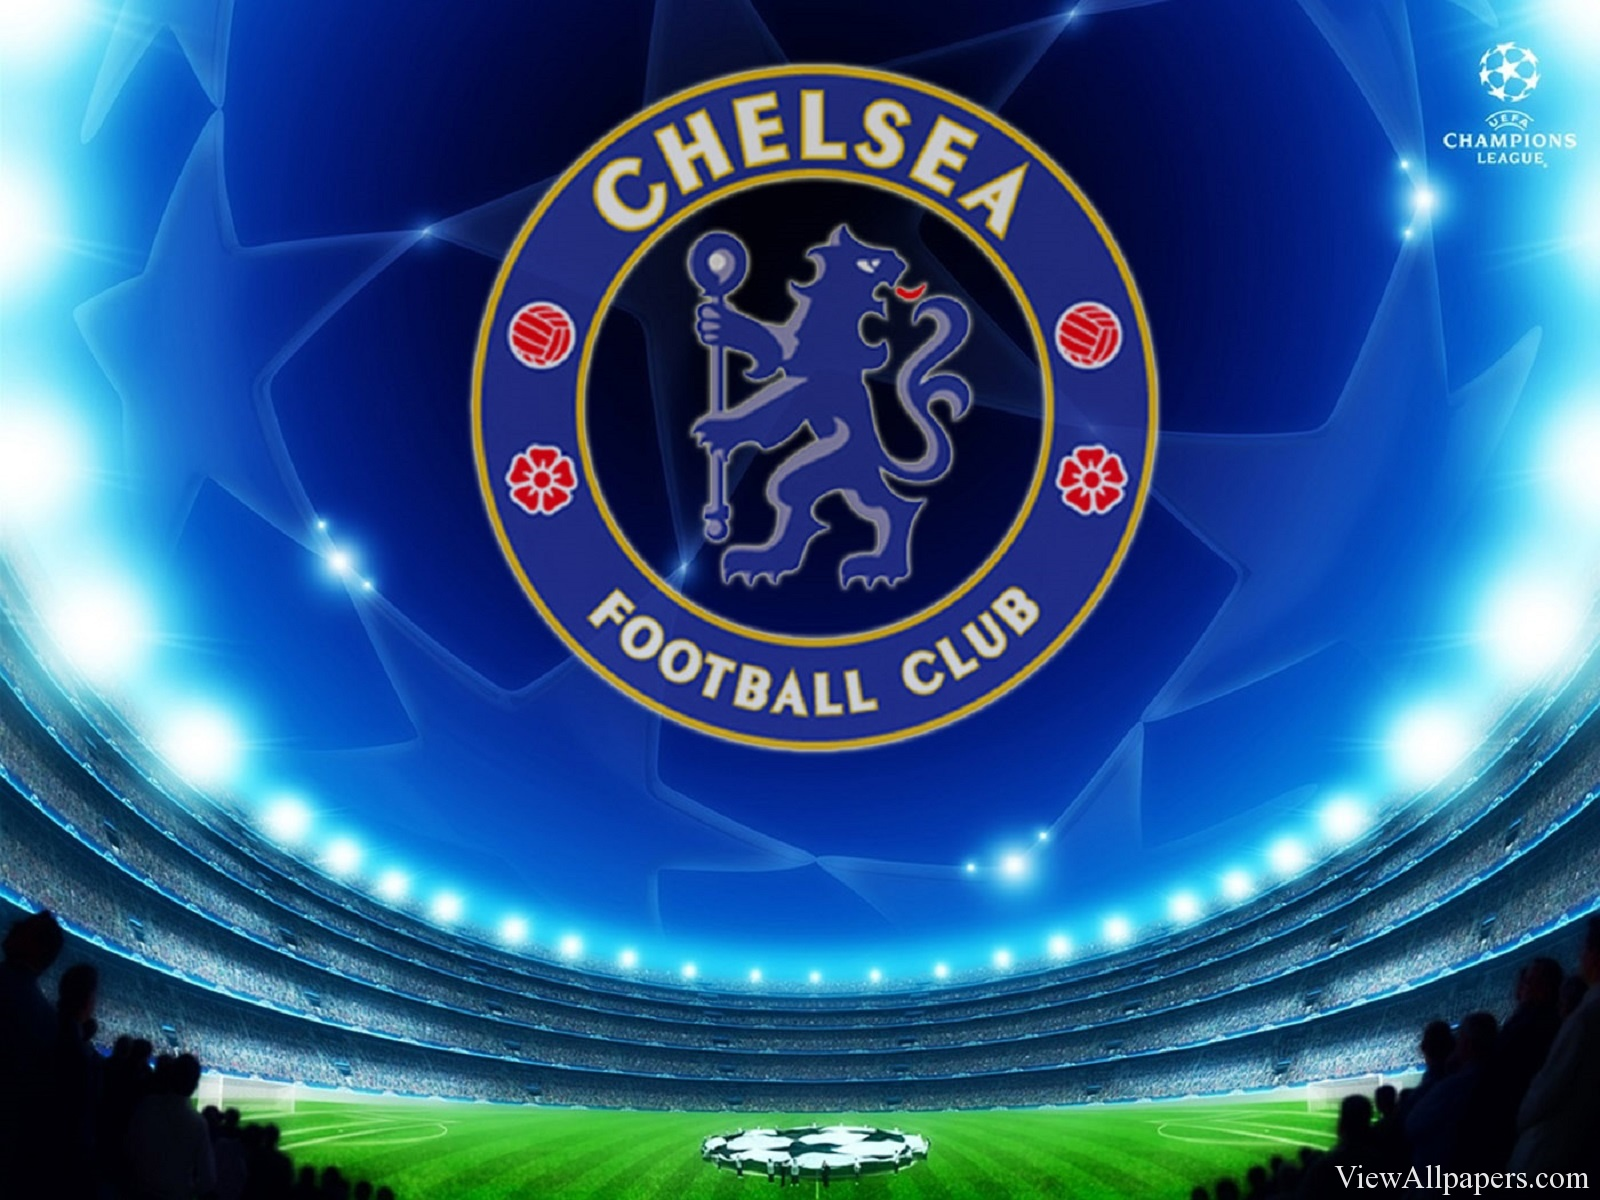 Chelsea FC Wallpaper High Resolution download Chelsea FC 1600x1200